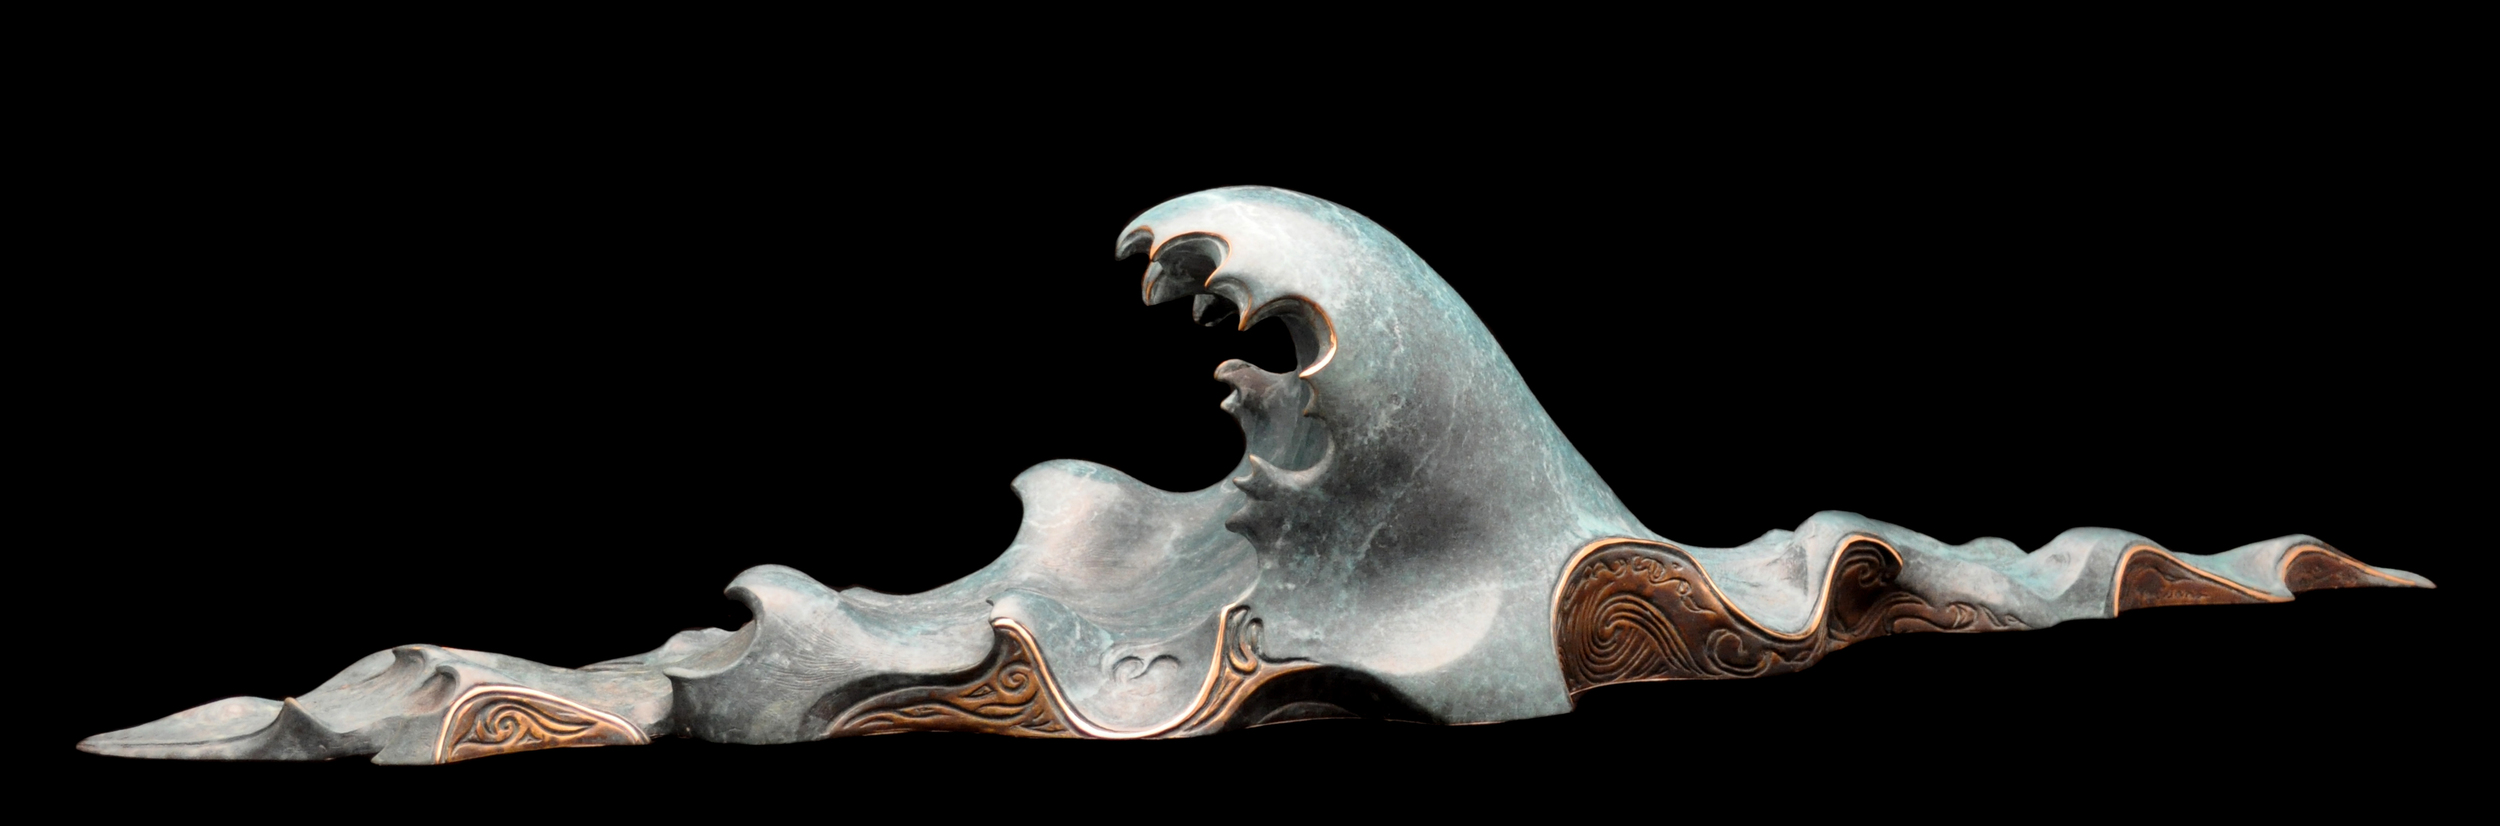 bronze-wave-sculpture-john-maisano-5.jpg